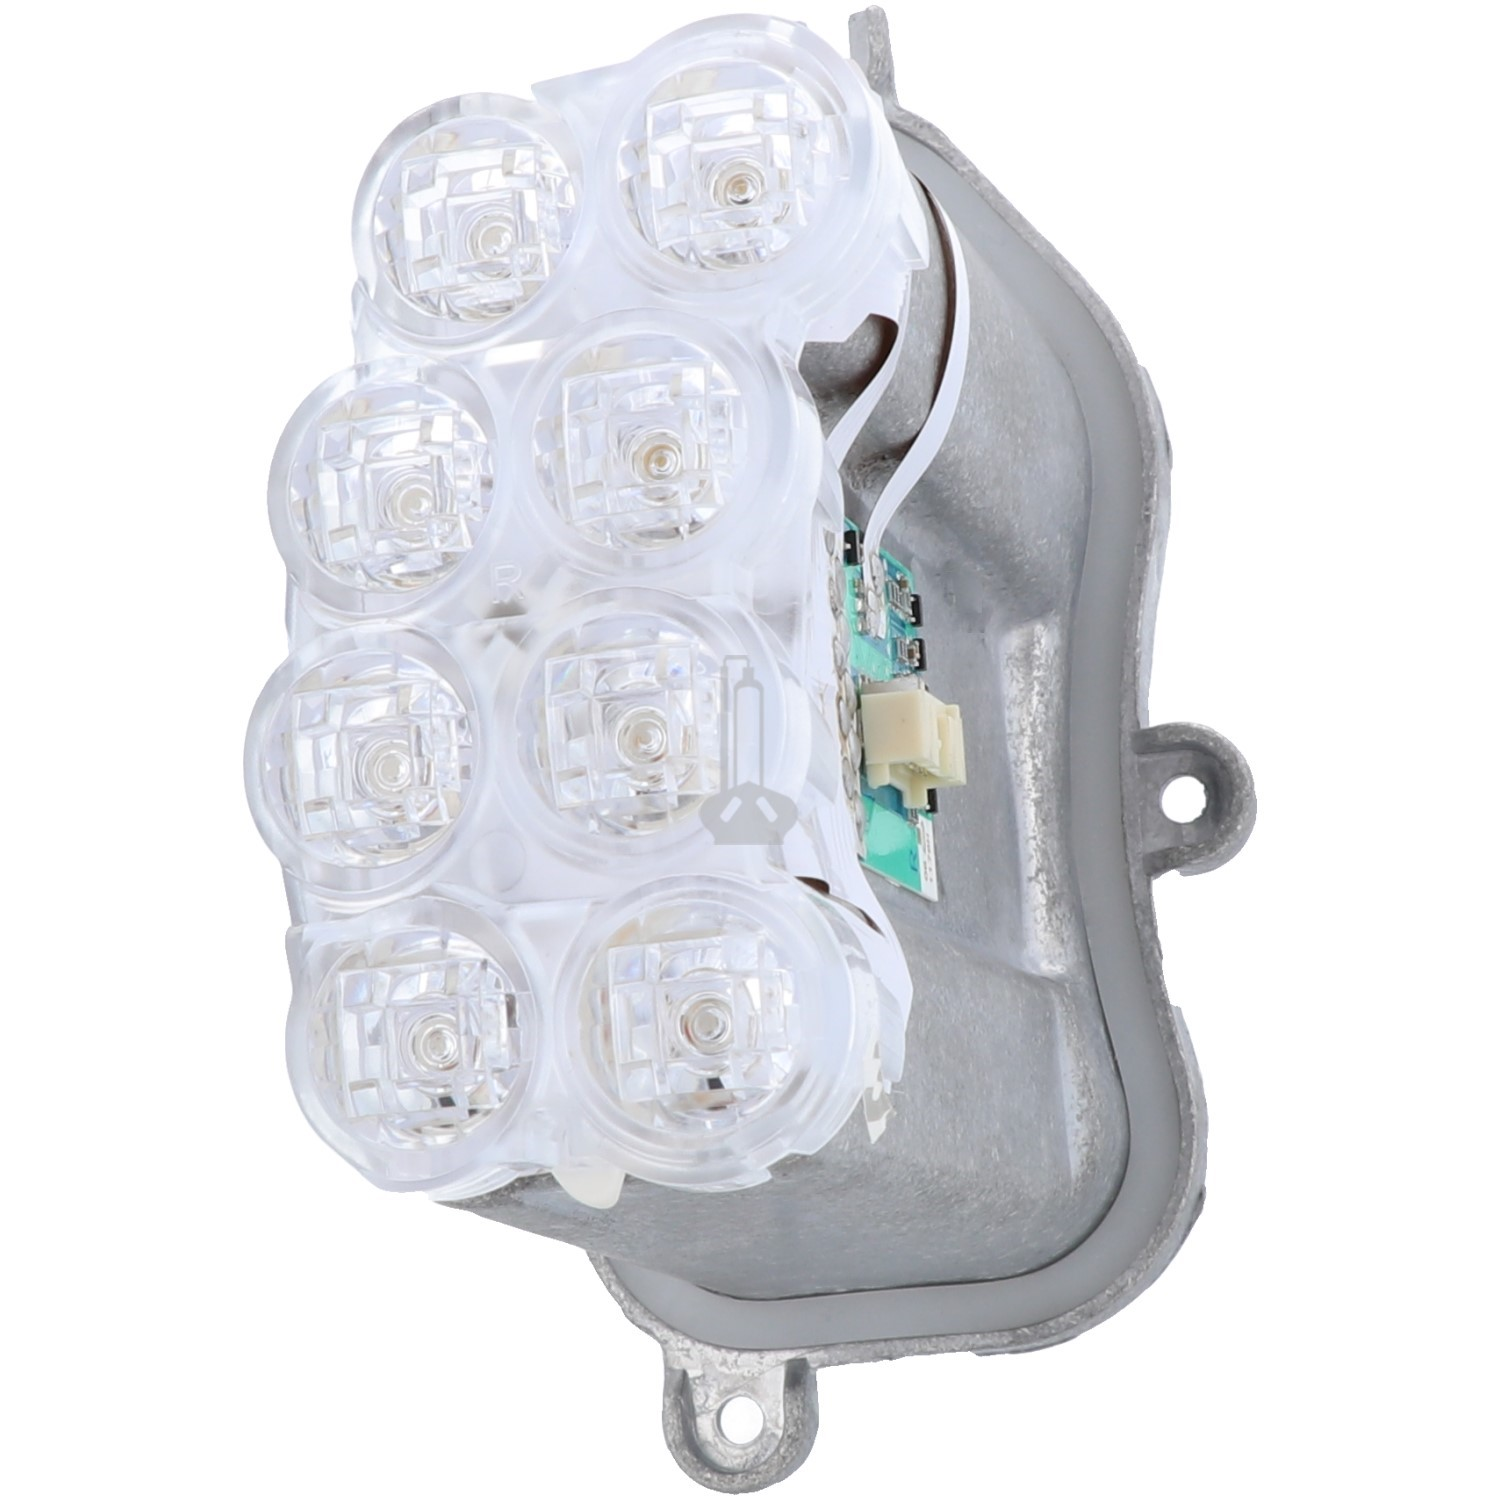 XENUS Headlight LED Module for Indicator Right BMW 7225232 F01 F02 F04, Replacement for ZKW